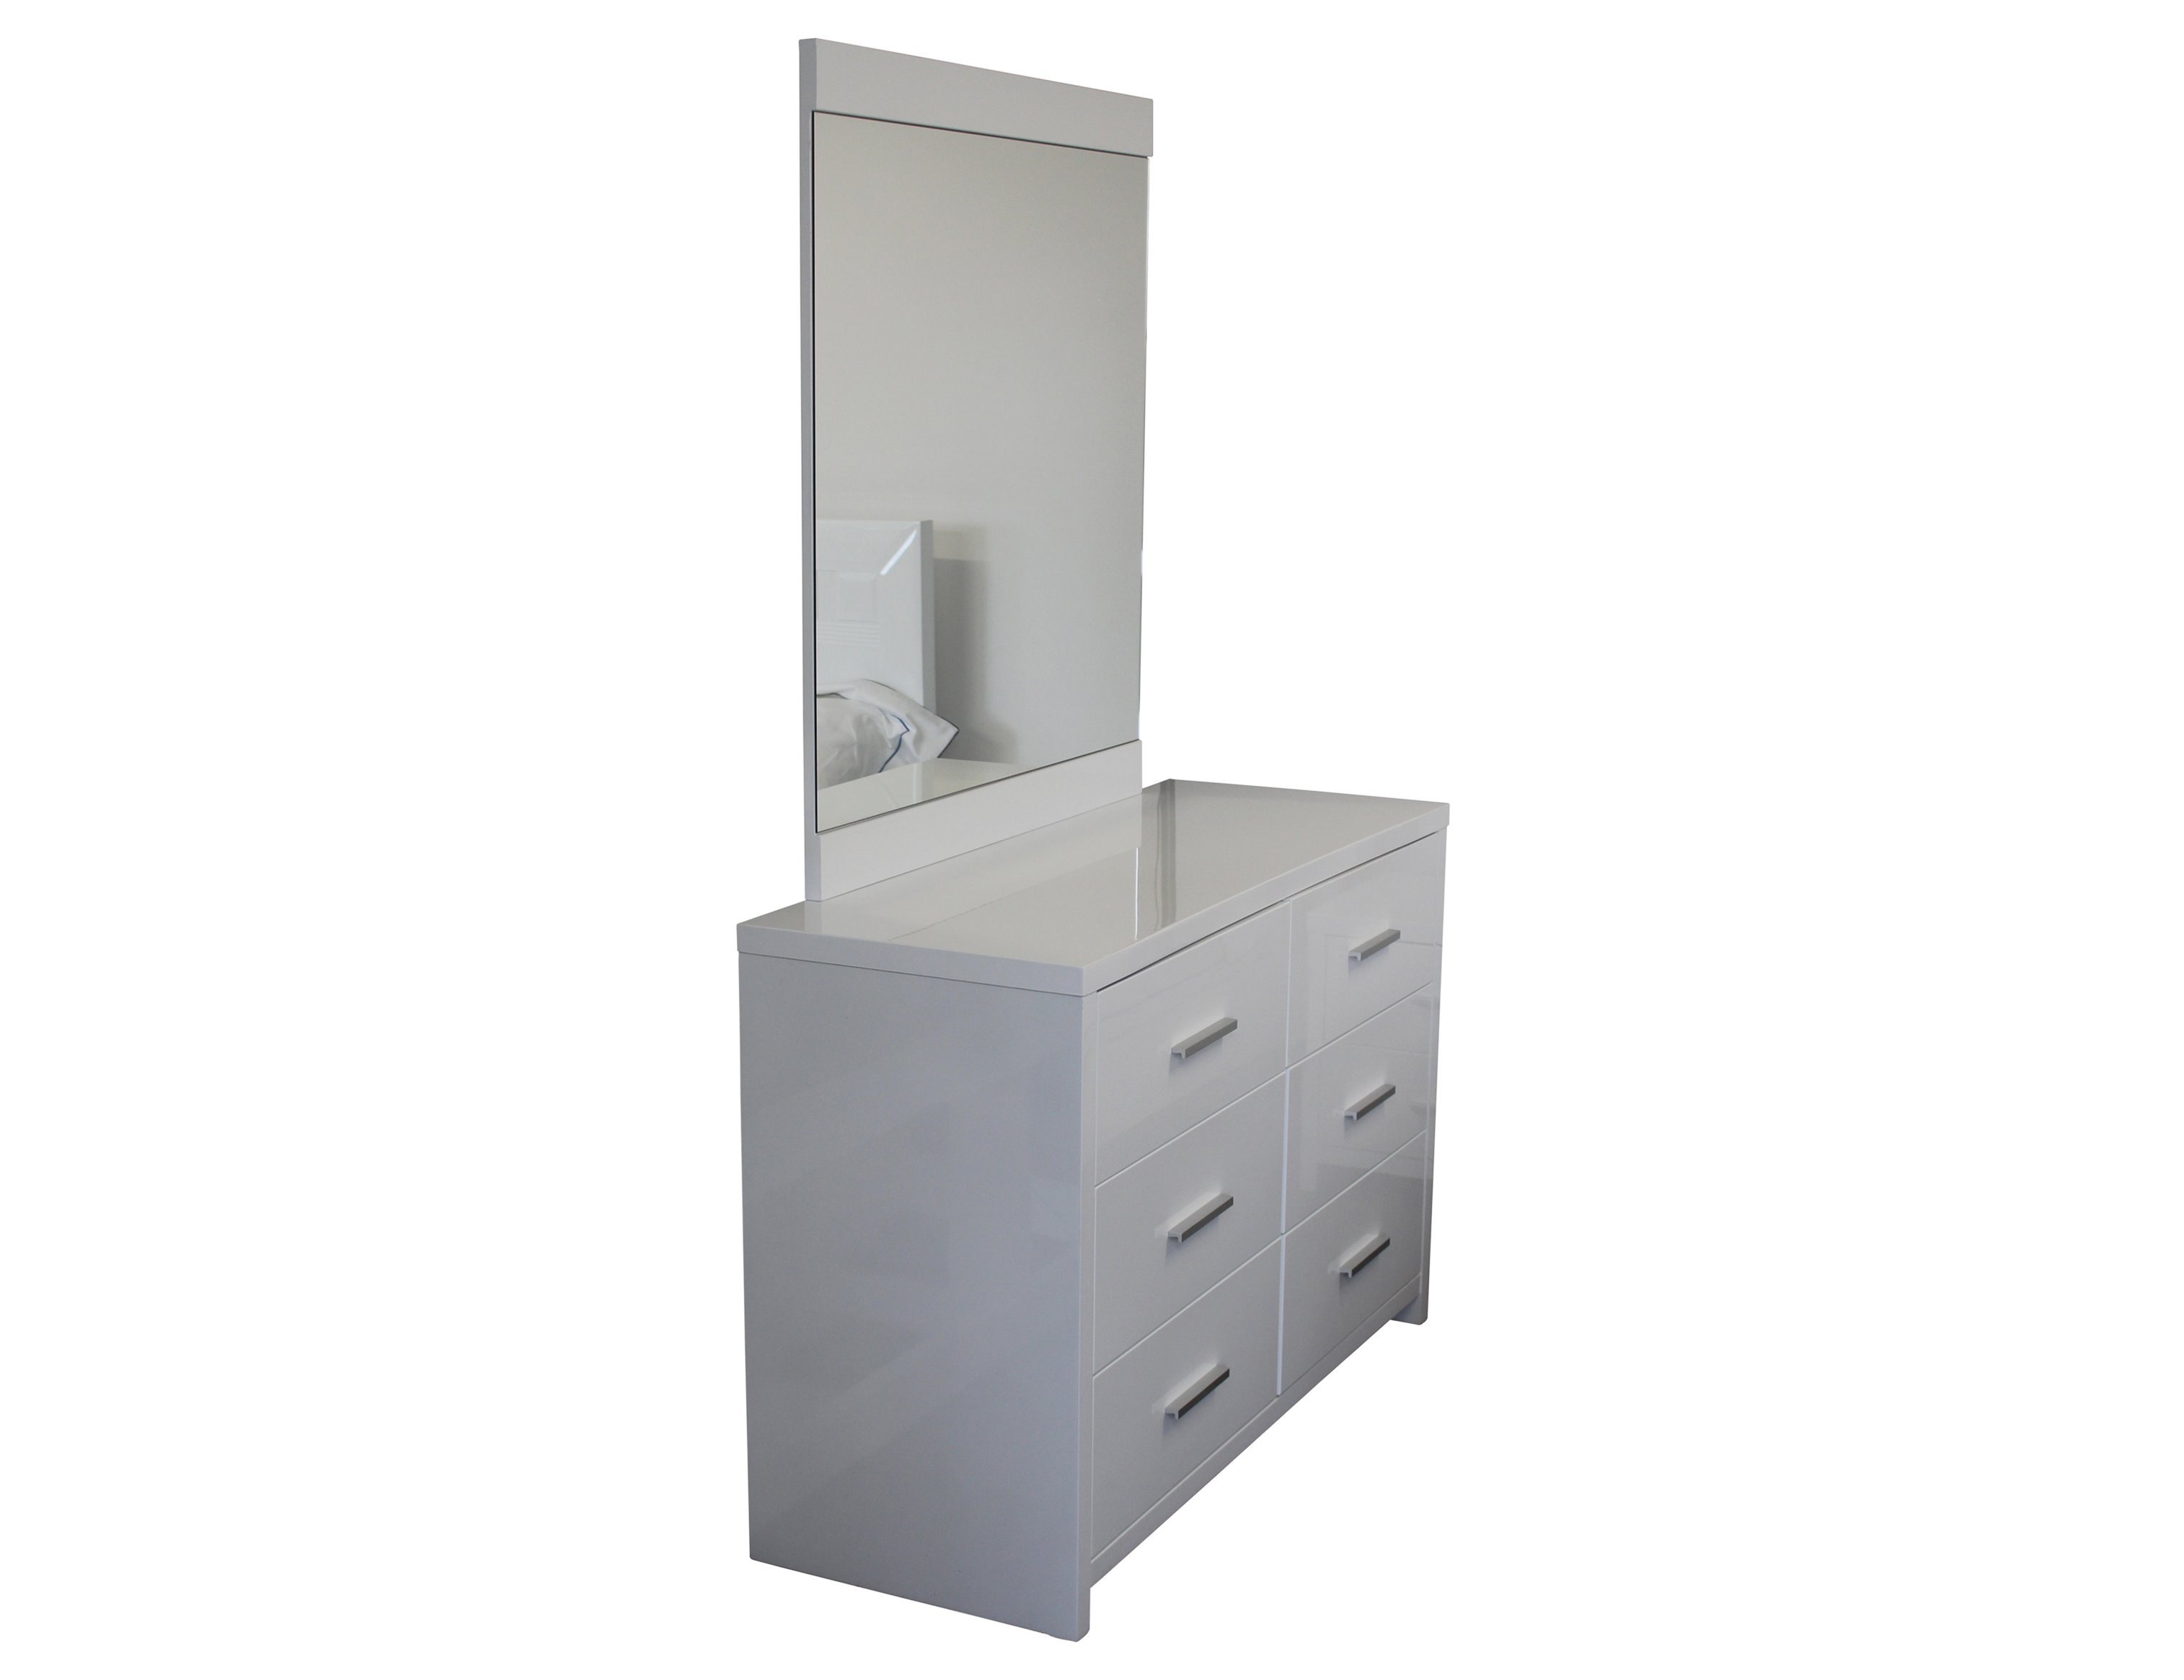 White Gloss Dressing Table And Chair: Manly 6 Drawer Dressing Table And Mirror White Gloss